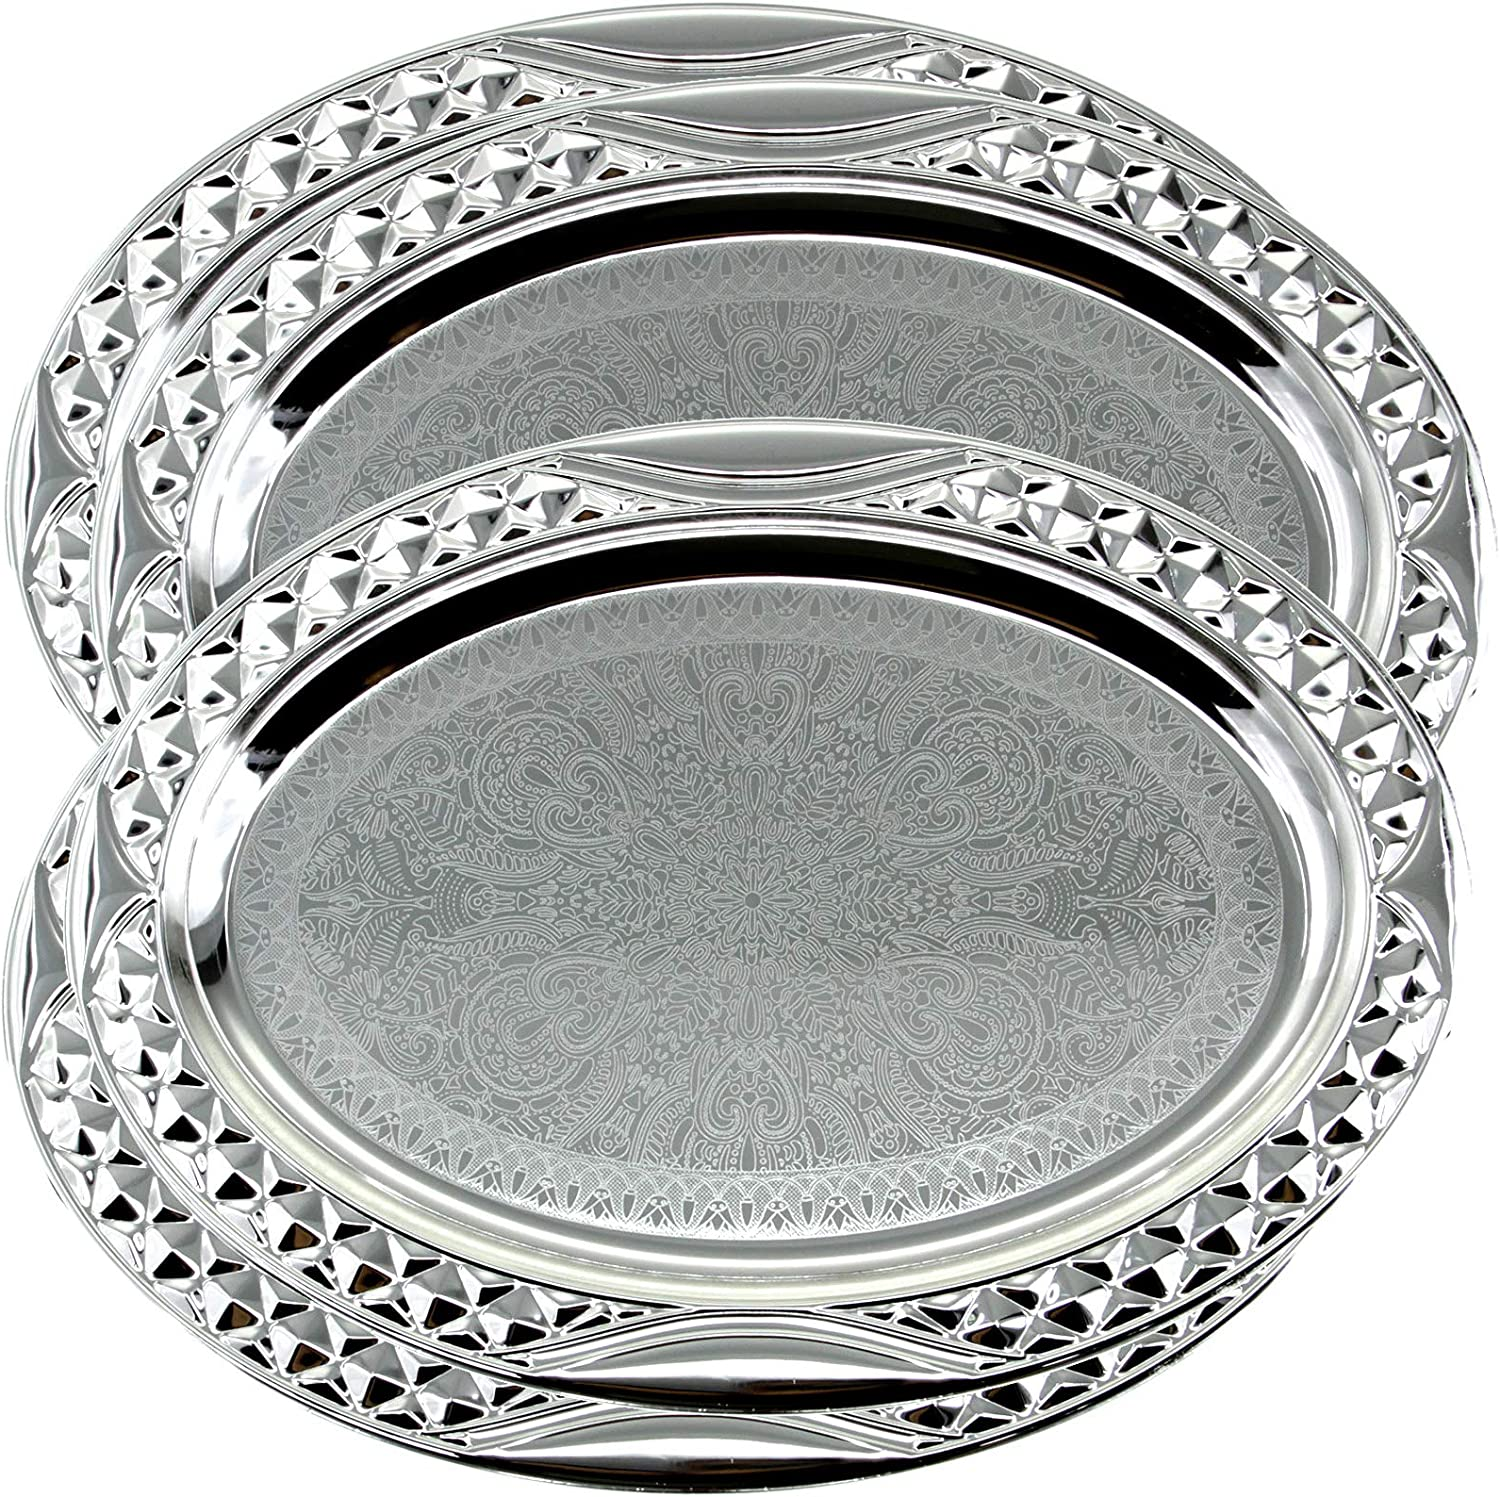 Maro Megastore (Pack of 4) 17.5 inch x 12.8 inch Oval Chrome Plated Serving Tray Stylish Design Floral Engraved Edge Decorative Party Birthday Wedding Dessert Buffet Wine Platter Plate TLA-438